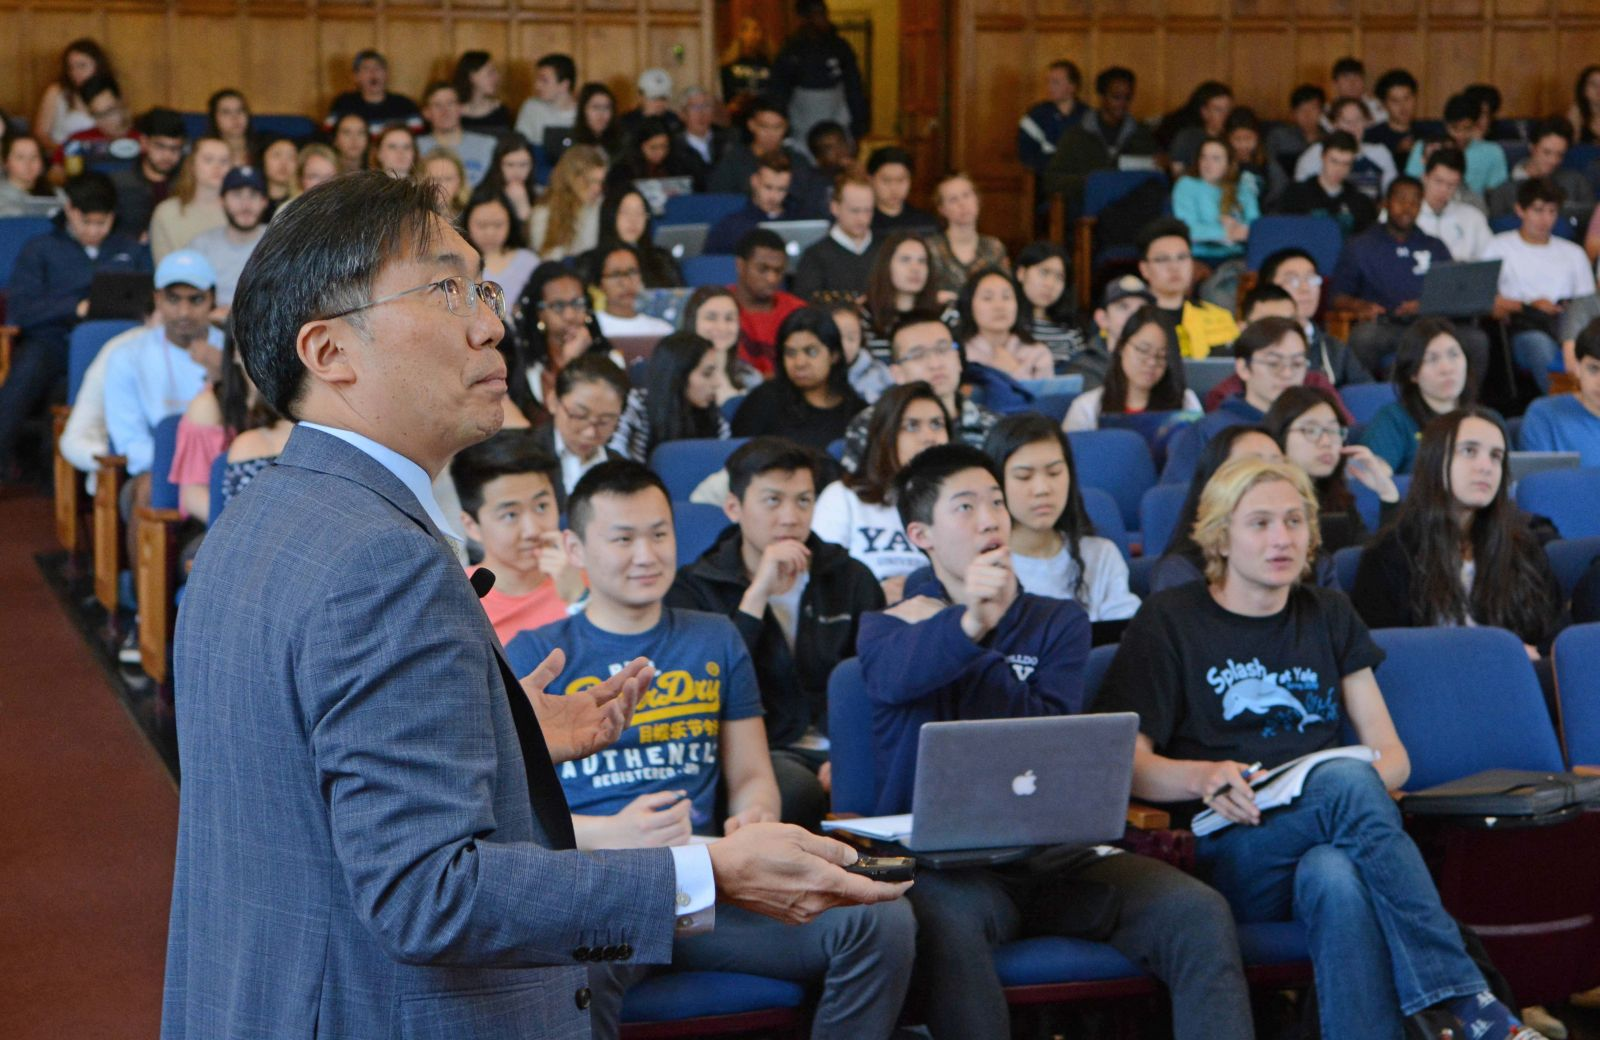 Dean Marvin Chun teaching his course in a lecture space with students